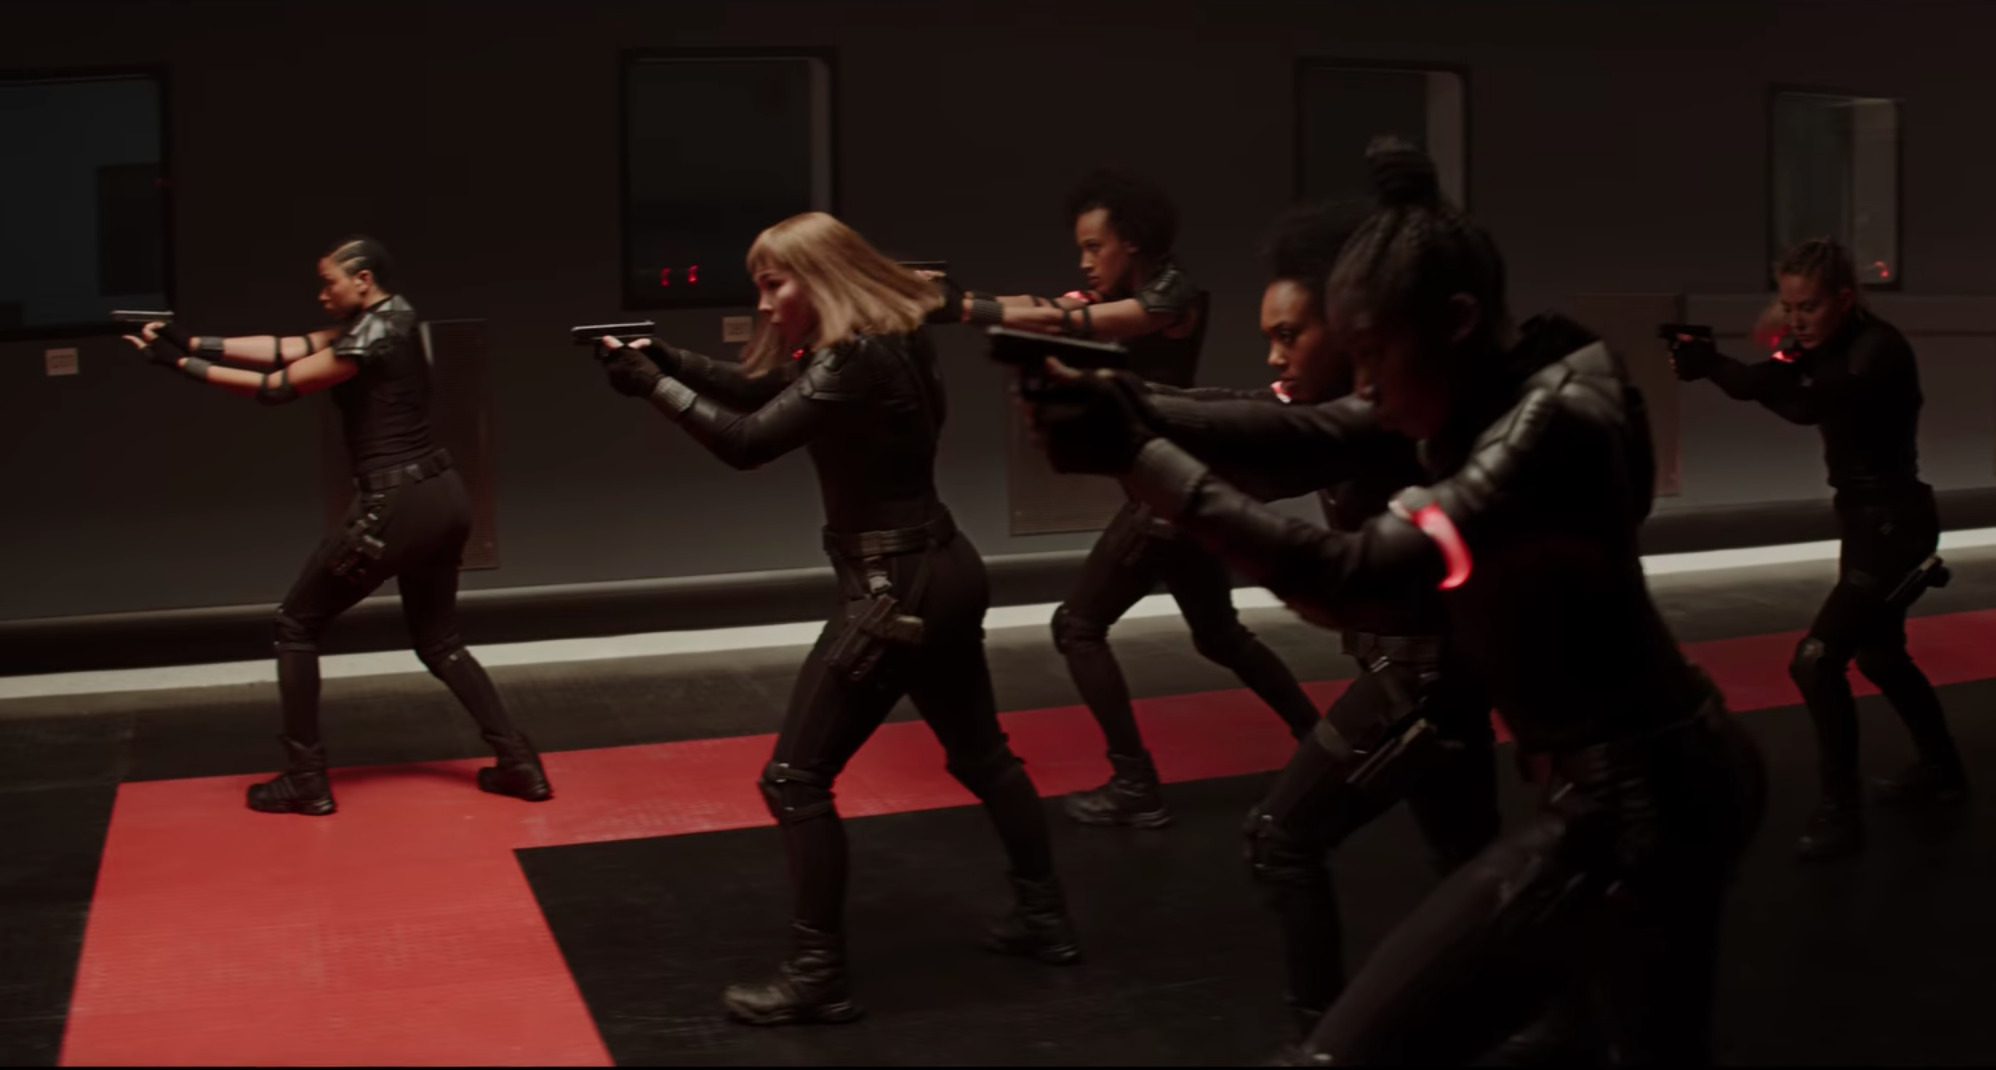 """A still from """"Black Widow"""" of the Red Room where the Black Widows are training"""